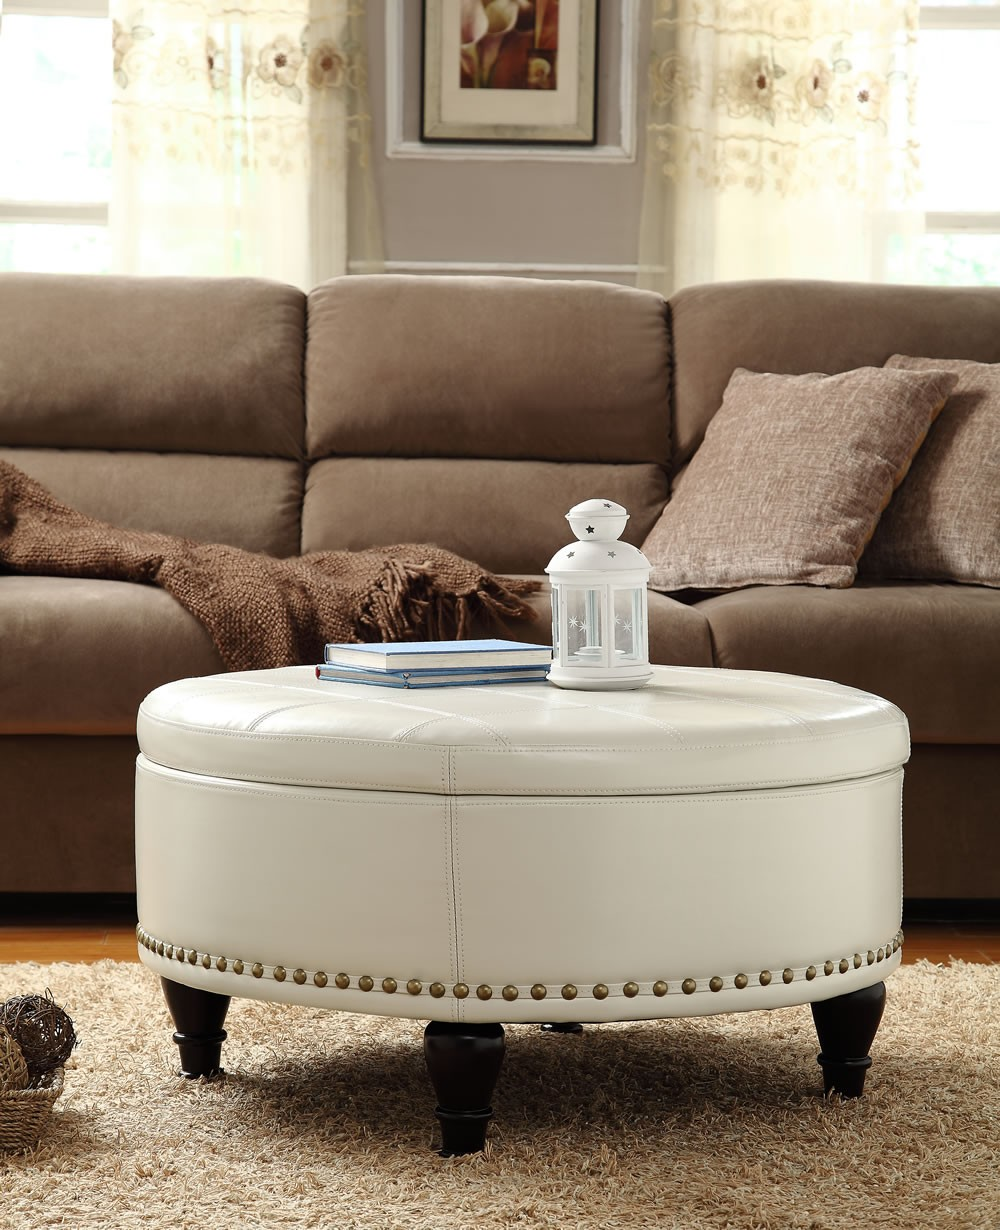 Simple Round Ottoman Coffee Table Stylish Table Design Round Tufted Storage Ottoman Coffee Table New And Used Leather Ottomans (Image 8 of 10)